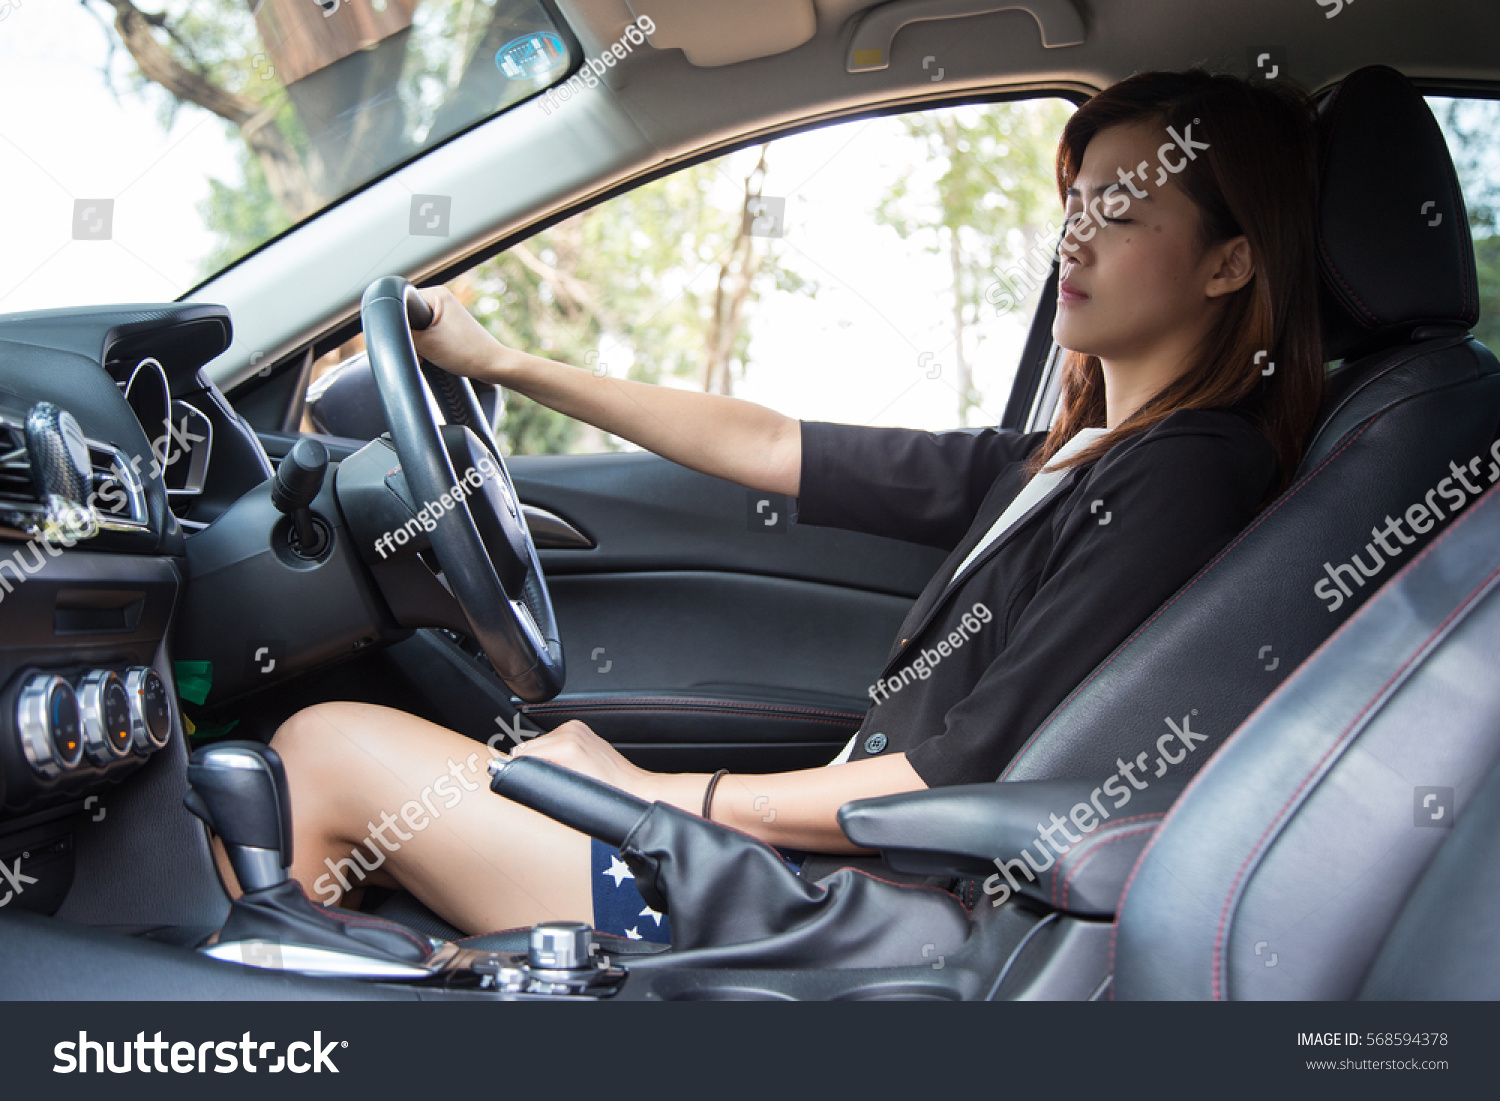 Sad Asian Woman Driver Car Stock Photo 568594378 - Shutterstock-5618